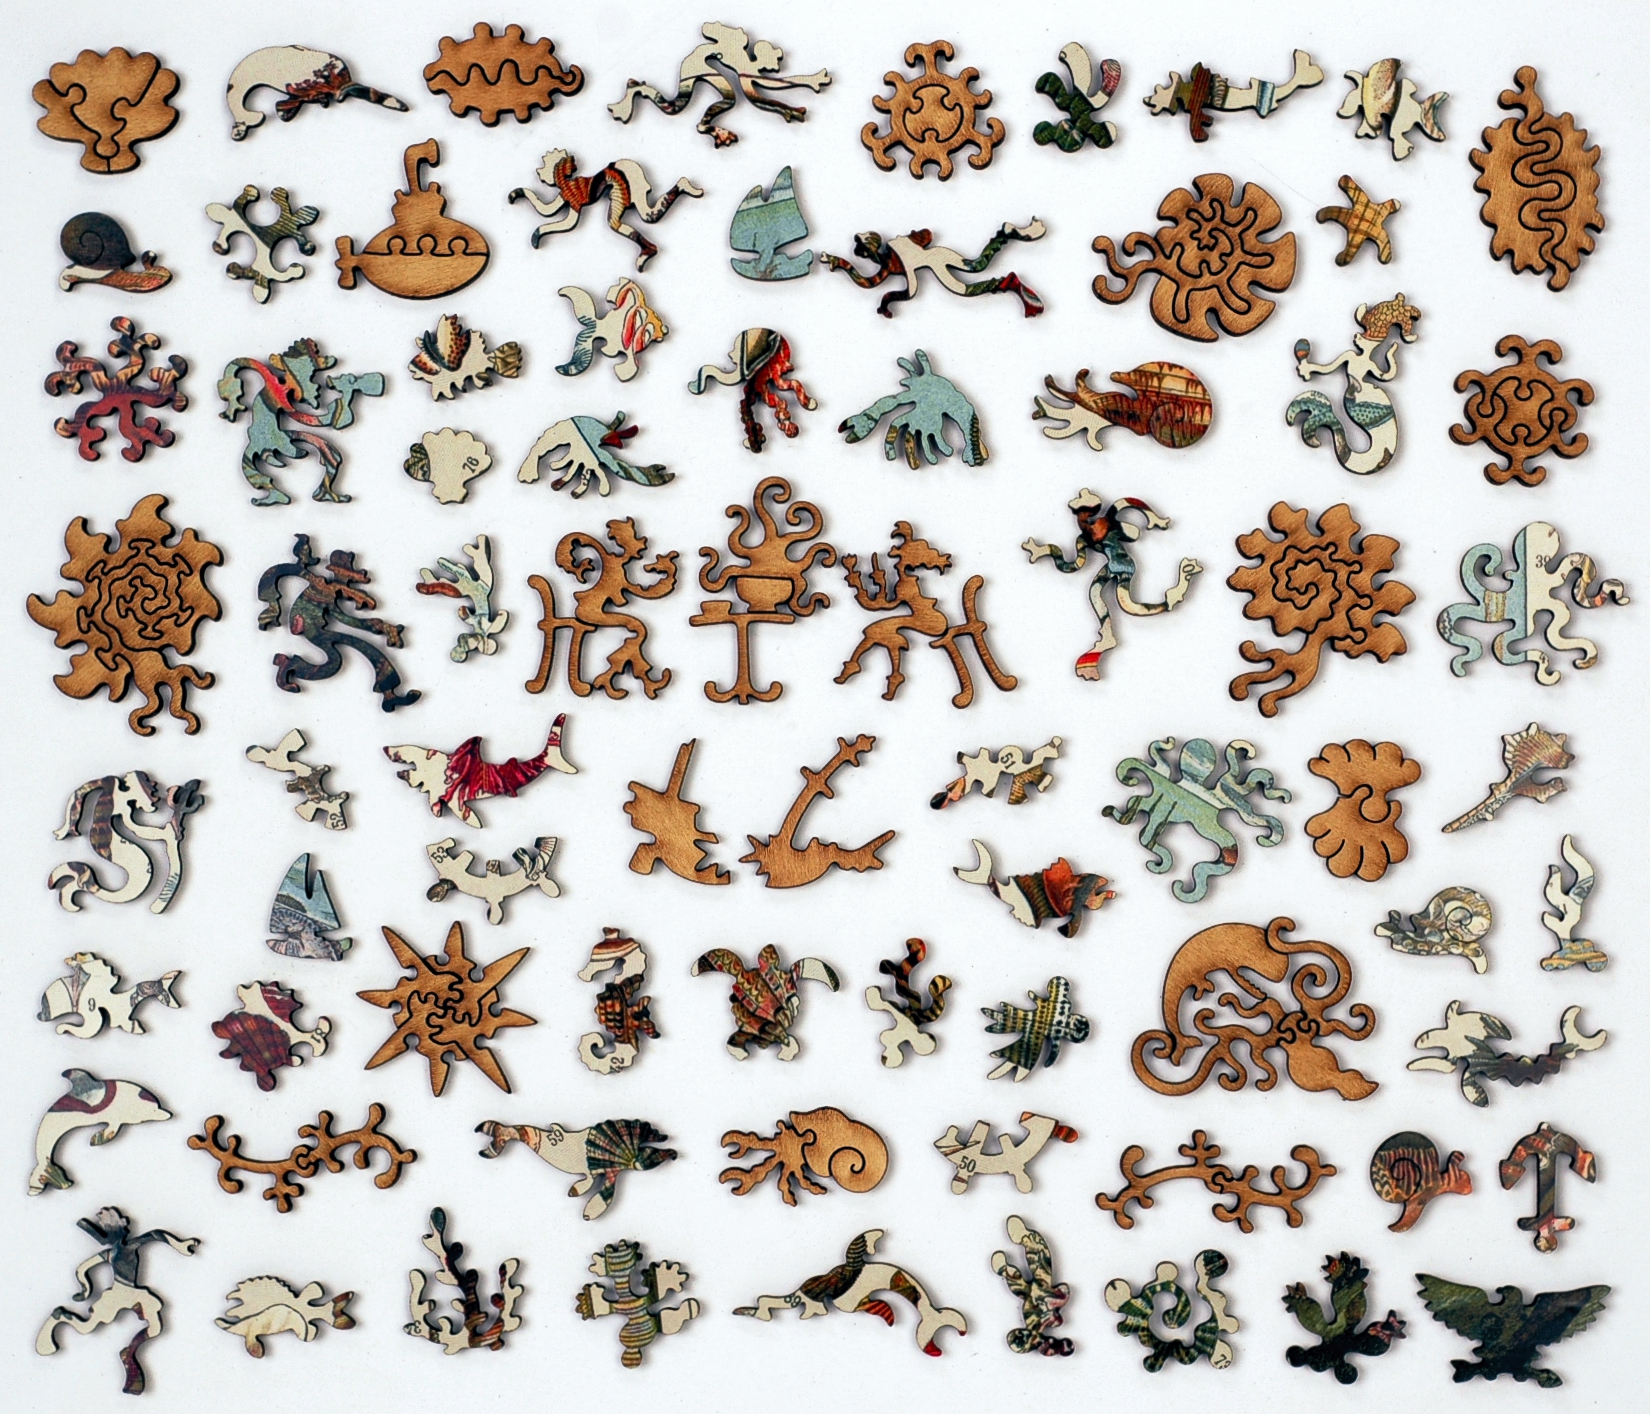 varieties of molluscs wooden jigsaw puzzle liberty puzzles